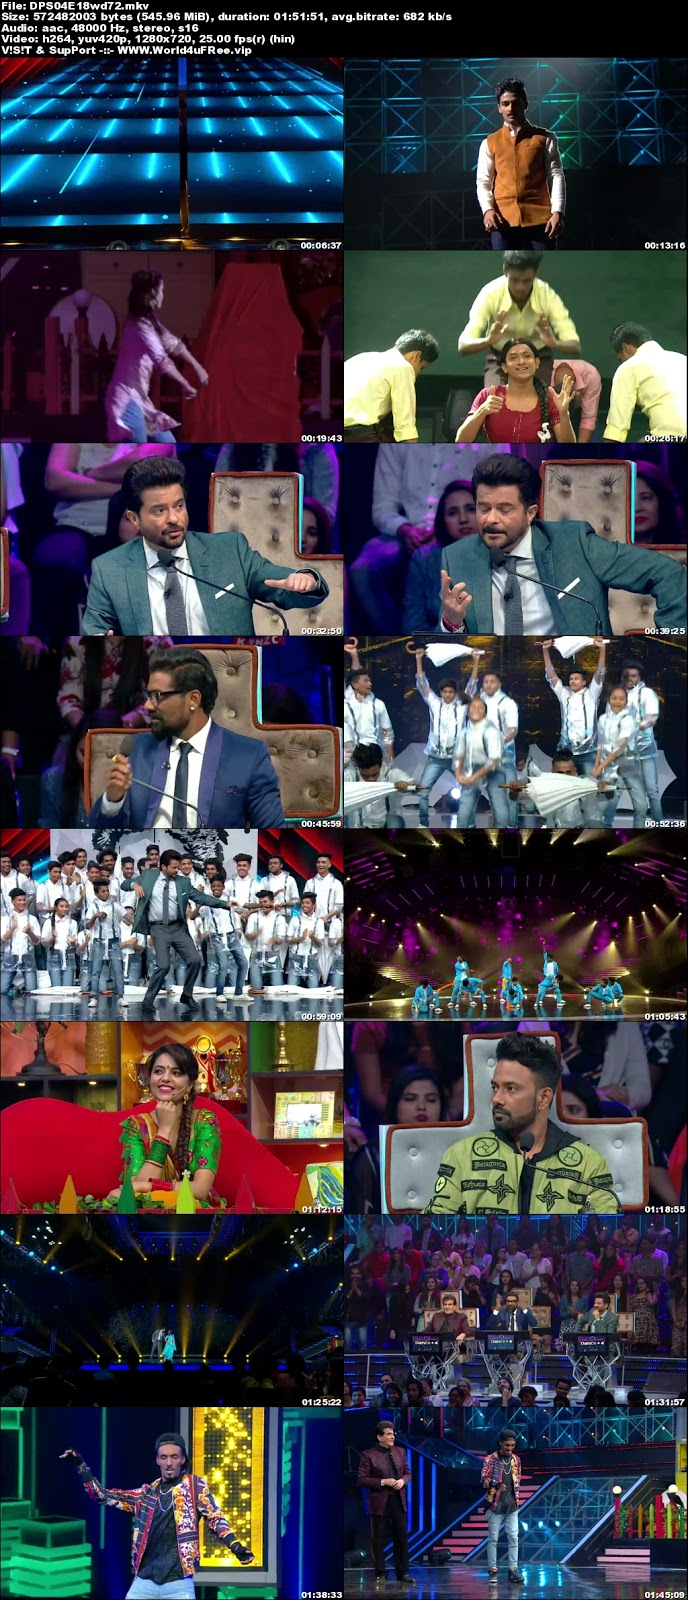 Dance Plus S4 08 December 2018 720p WEBRip 500Mb x264 world4ufree.vip tv show Dance Plus 4 2018 hindi tv show Dance Plus 4 2018 Season 4 Star Plus tv show compressed small size free download or watch online at world4ufree.vip